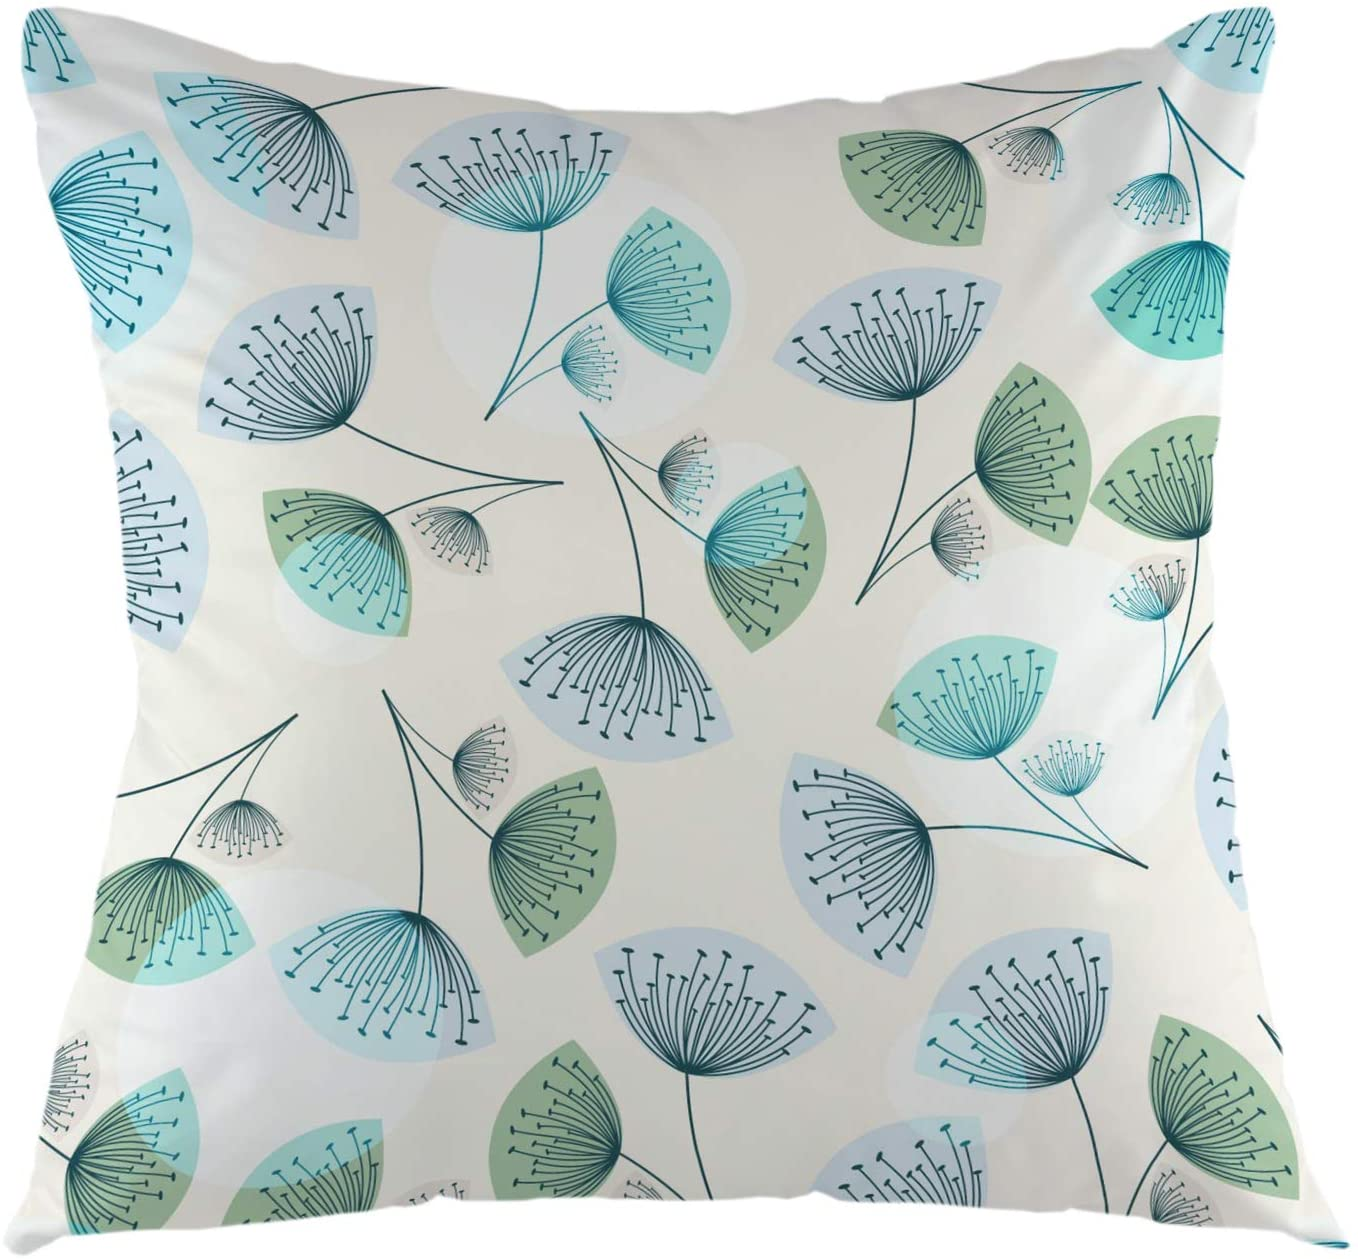 oFloral Dandelion Throw Pillow Cover Square Cushion Case for Sofa Couch Car Bedroom Living Room 18